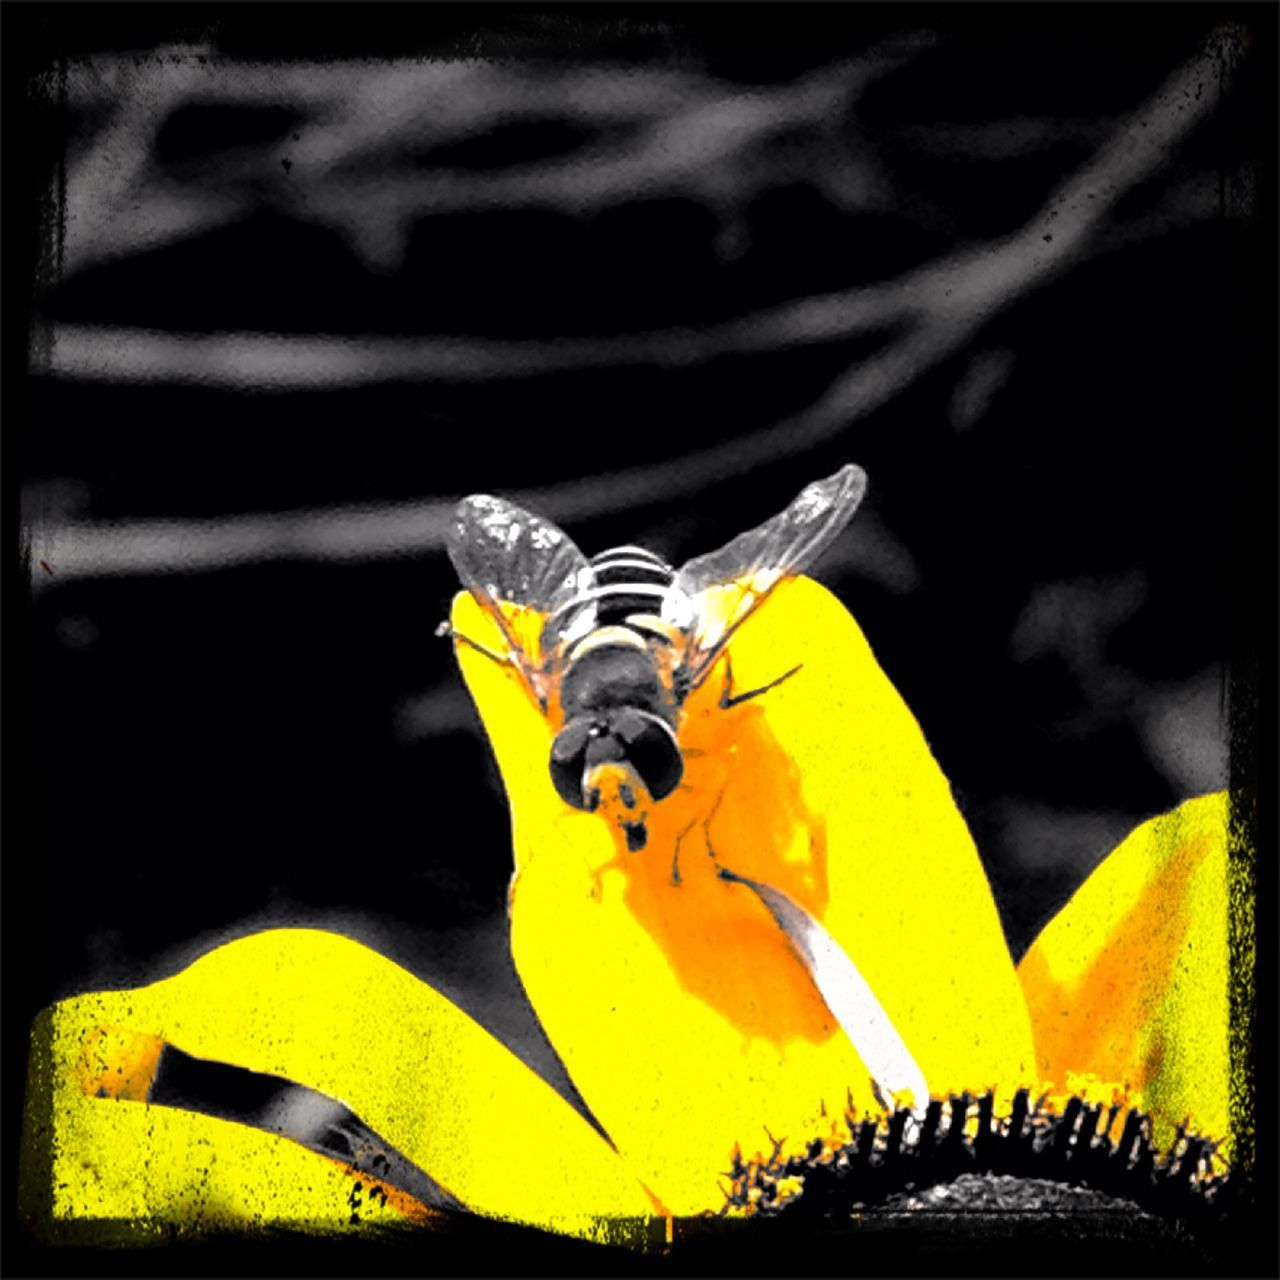 yellow, insect, one animal, animal themes, close-up, animals in the wild, no people, outdoors, day, nature